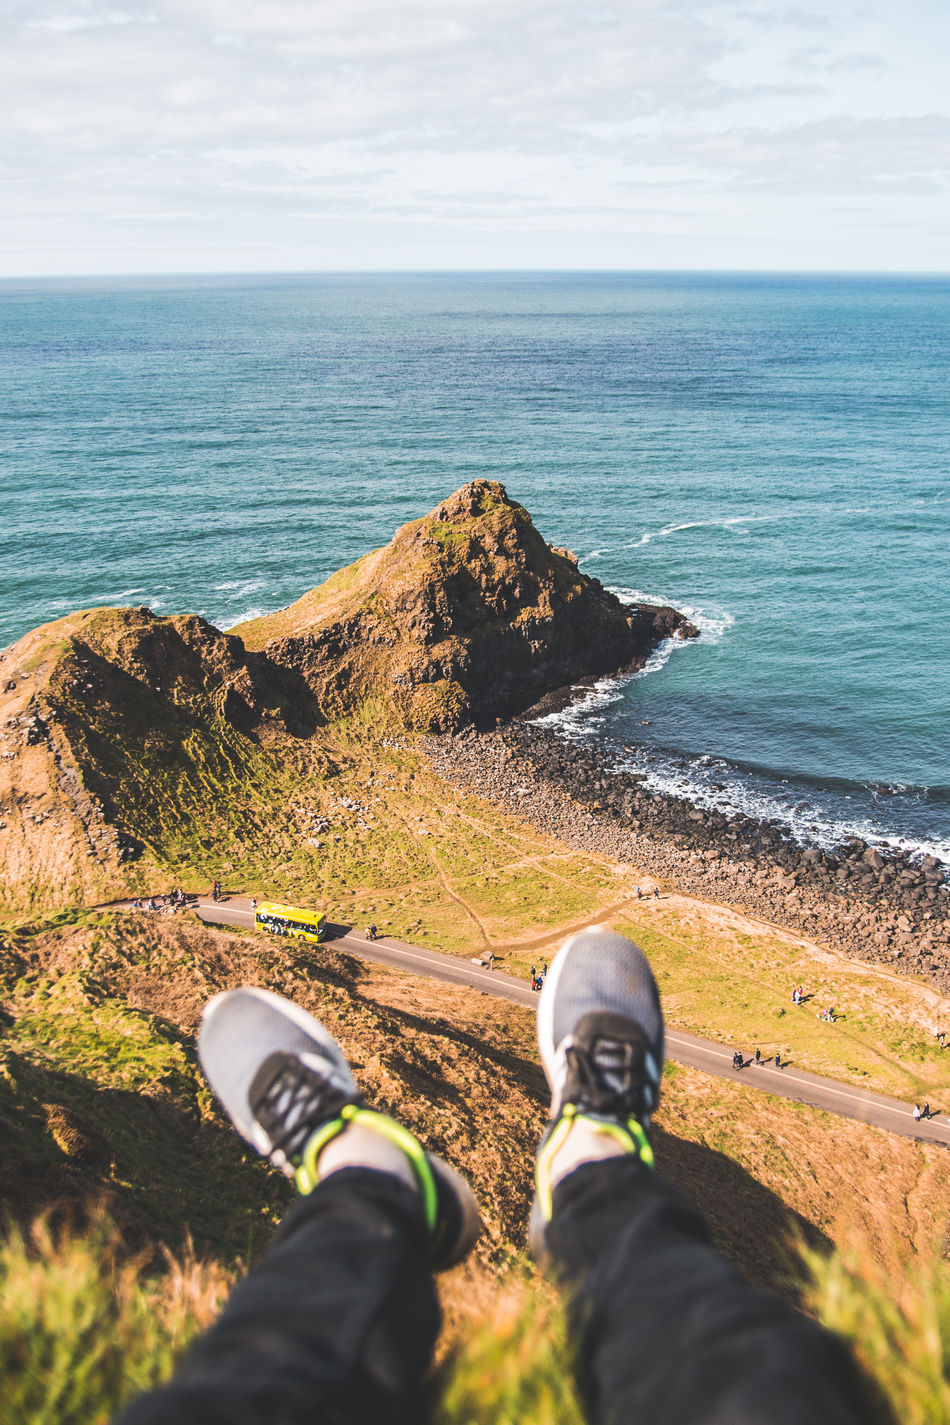 Adrenaline Junkie Beach Beauty In Nature Cliff Cliffs Day Horizon Over Water Human Body Part Human Leg Leisure Activity Low Section Men Nature One Person Outdoors Personal Perspective Real People Rock - Object Scenics Sea Sky Standing Tranquil Scene Tranquility Water